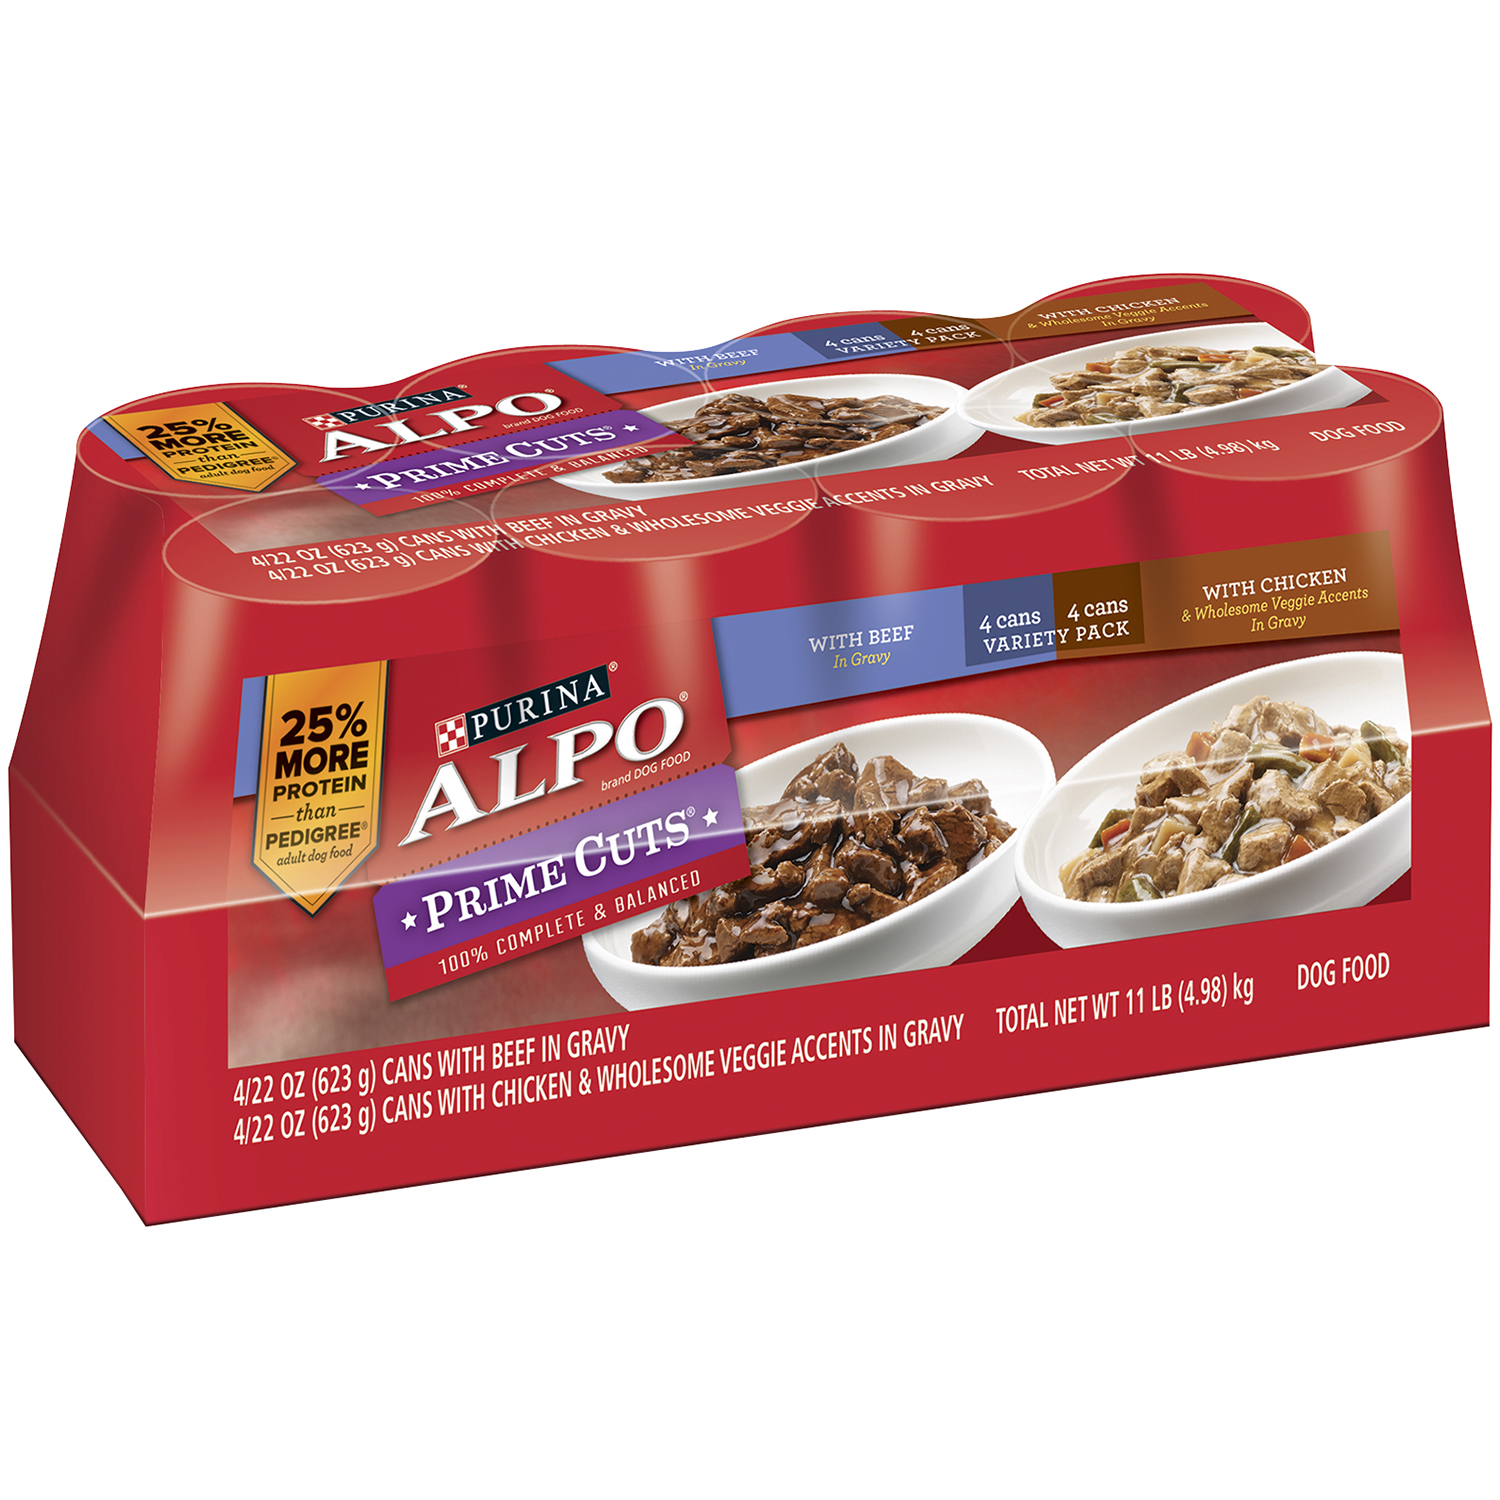 Purina ALPO Prime Cuts Variety Pack Dog Food 8-22 oz. Cans